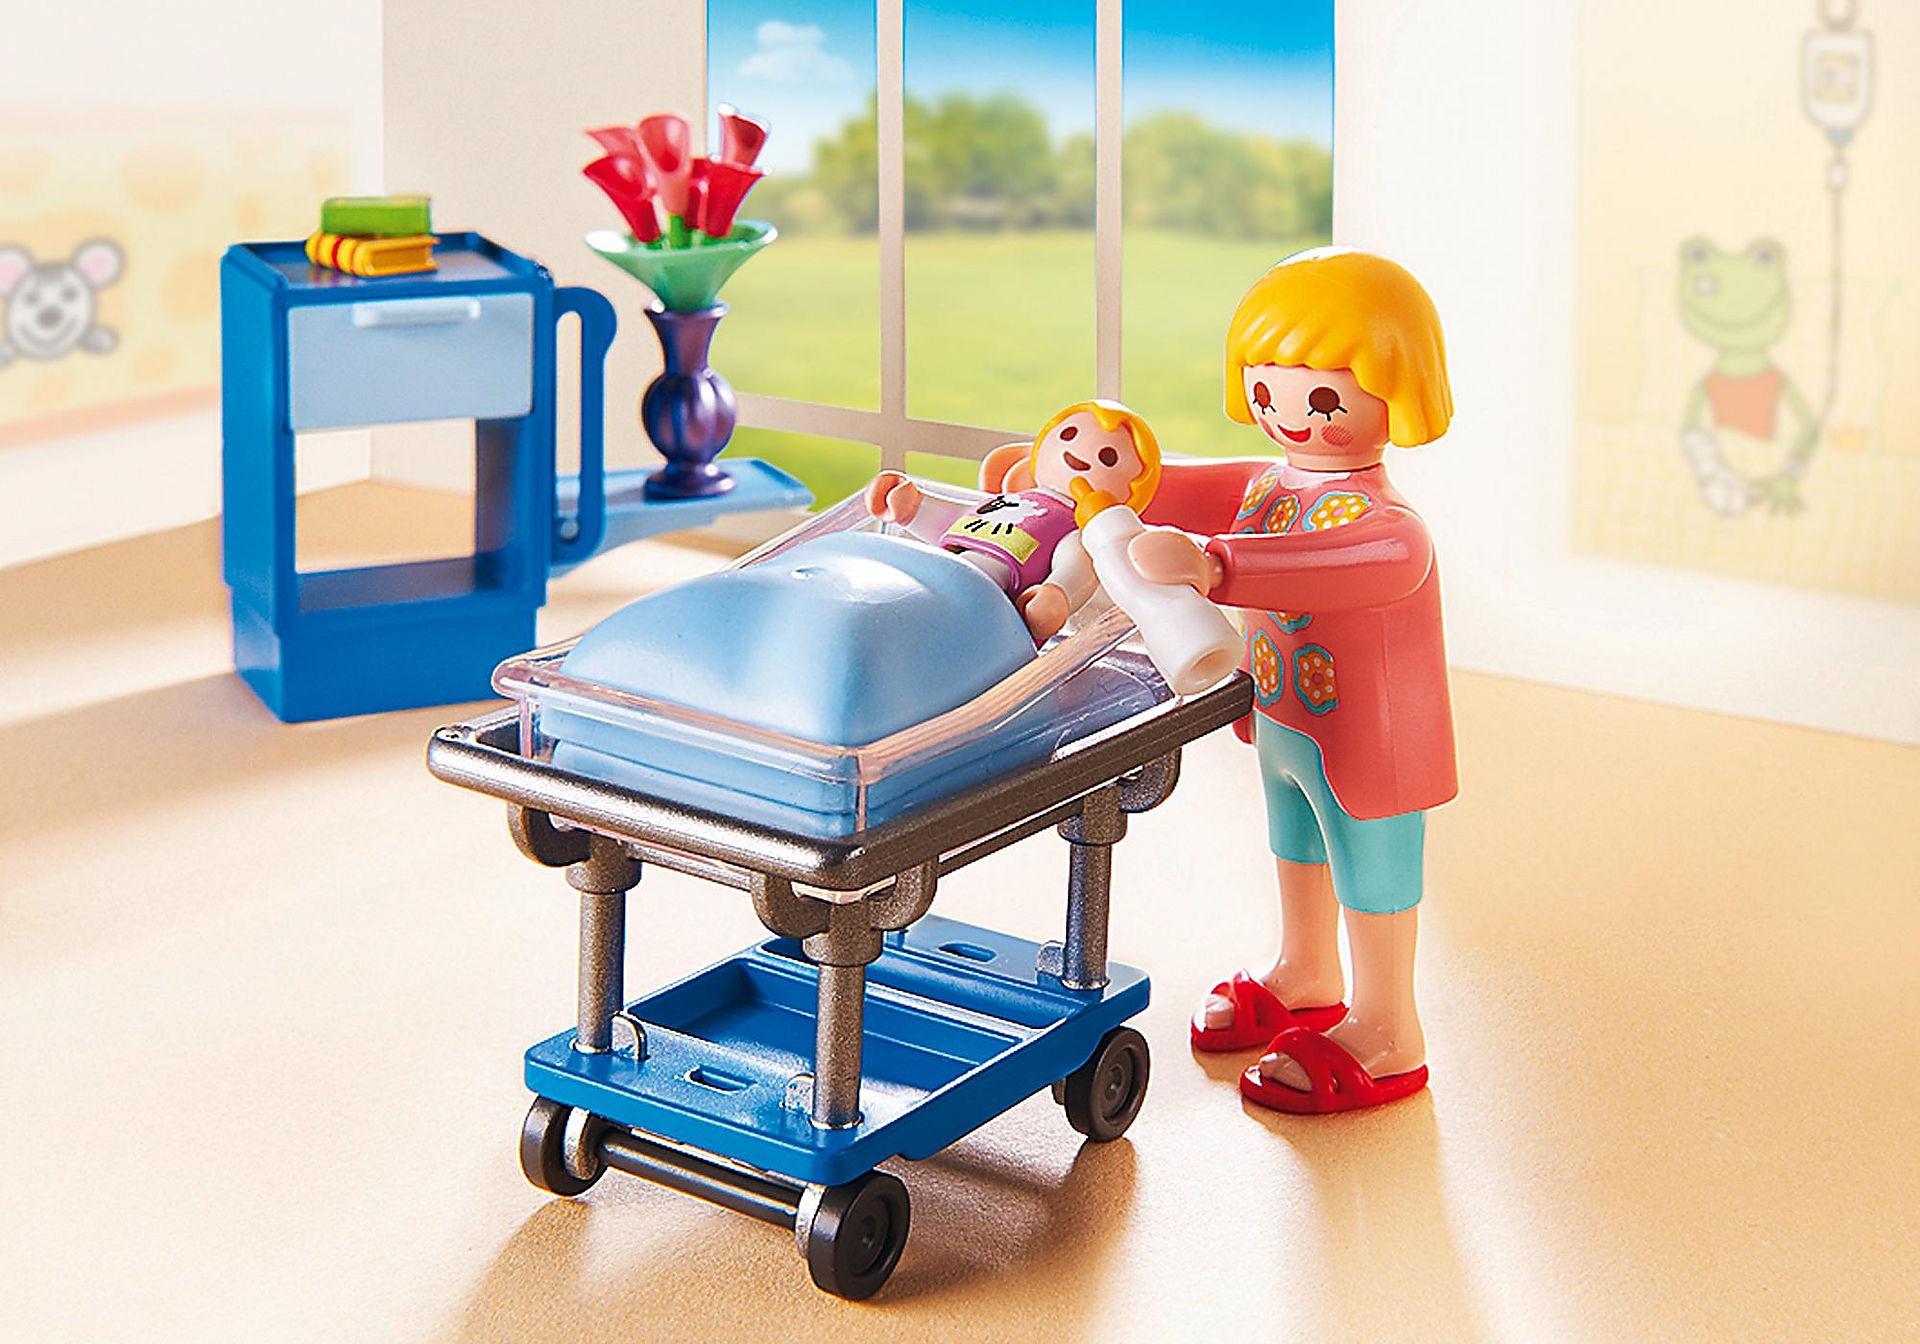 http://media.playmobil.com/i/playmobil/6660_product_extra1/Maternity Room